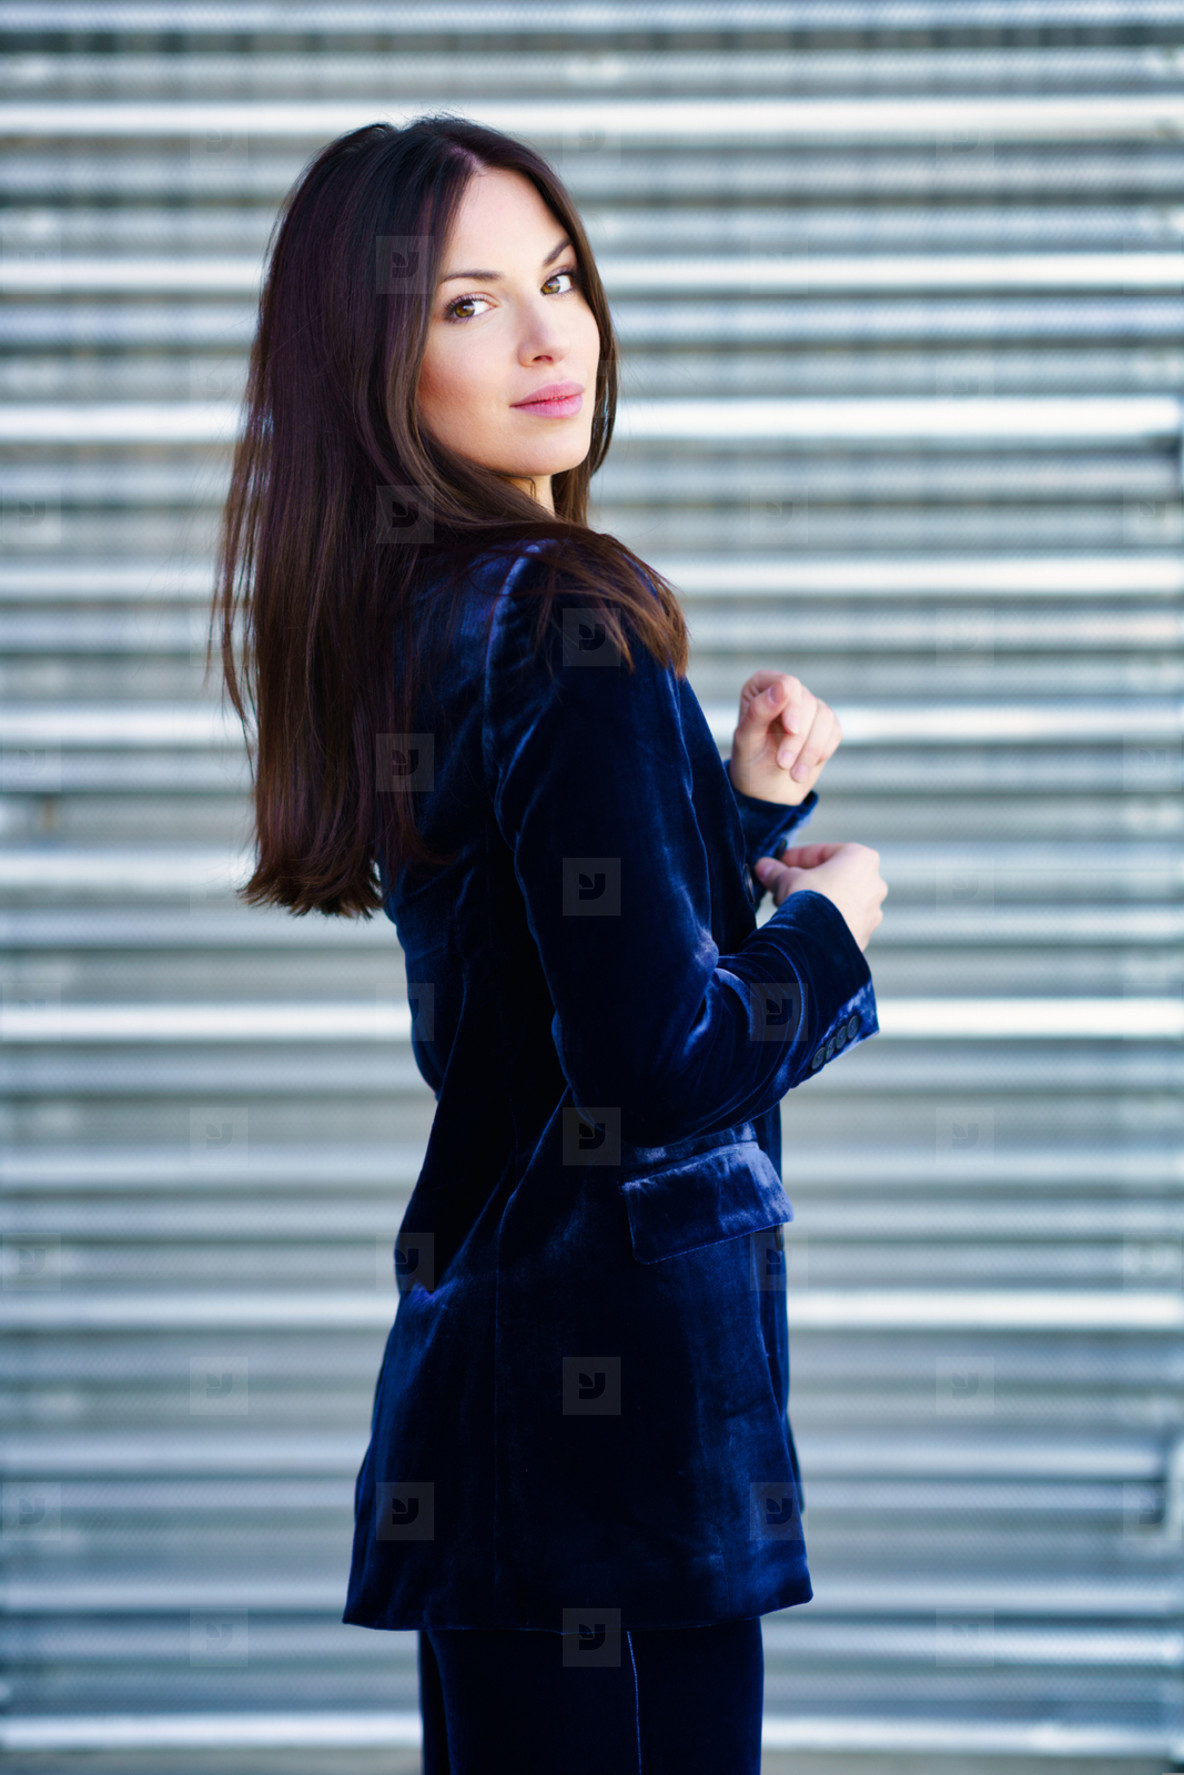 Woman wearing blue suit posing near a modern metal building